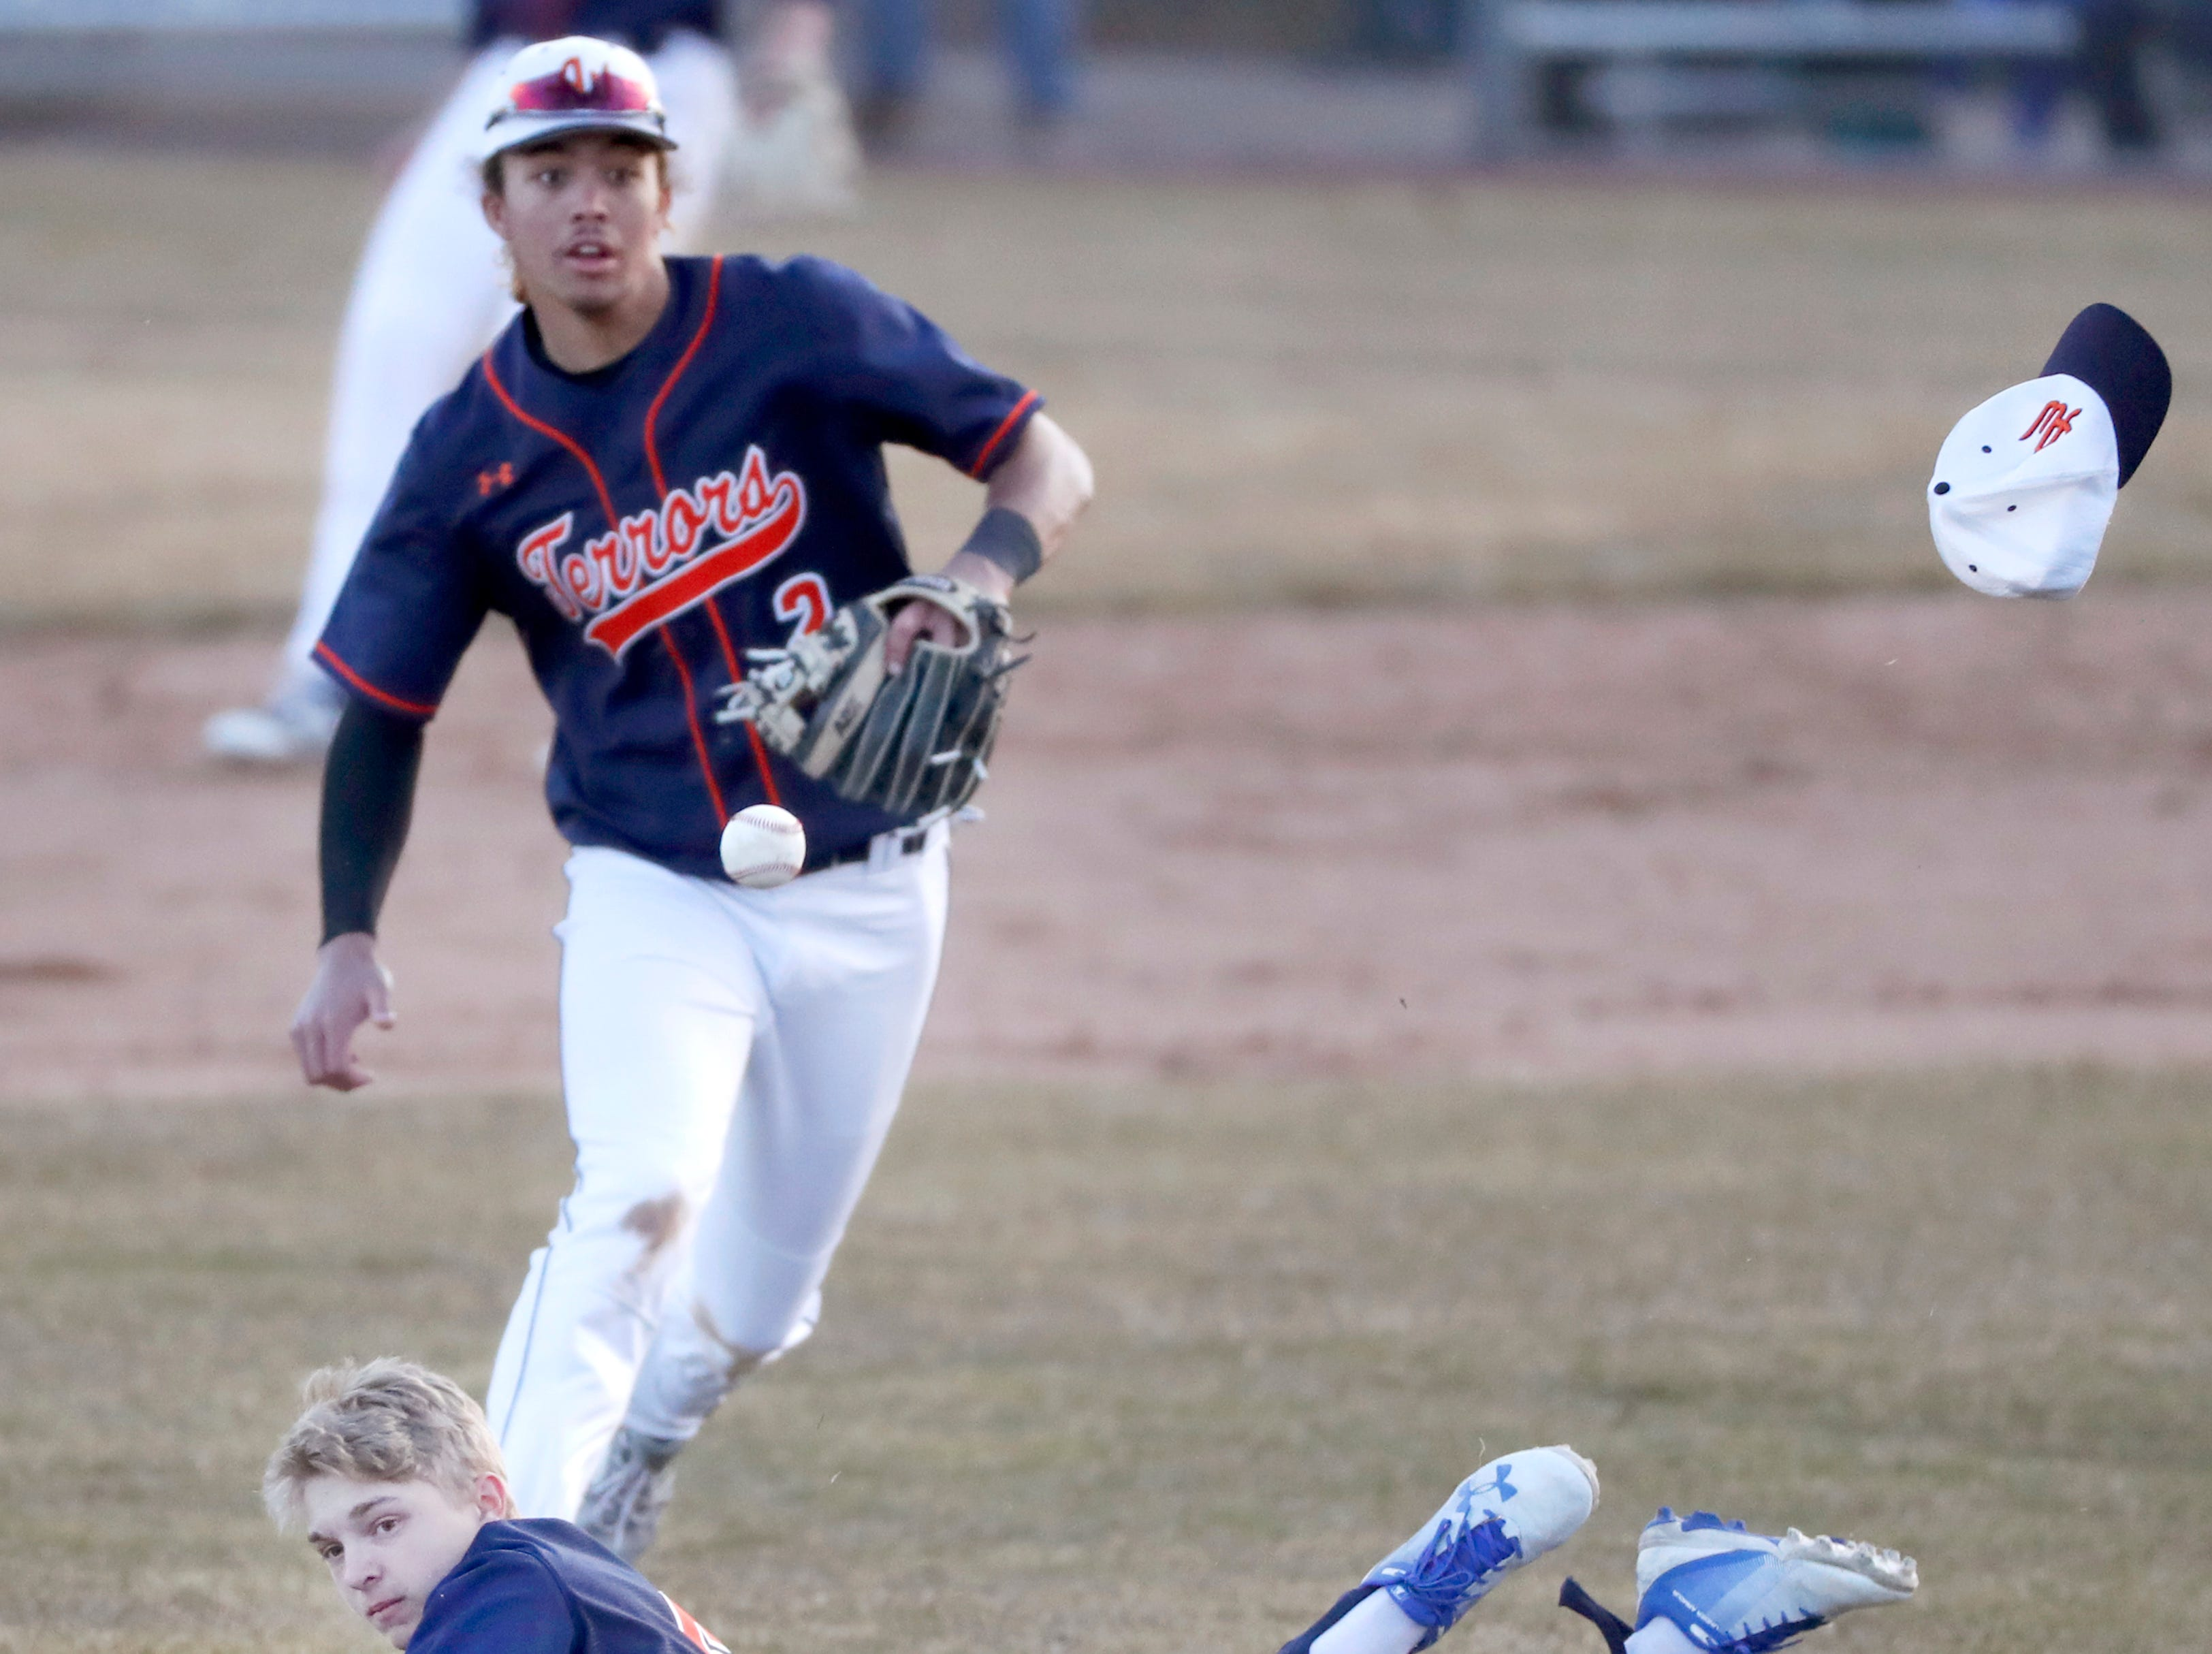 Appleton West High School's Nick Lavigne hits the ground after missing a catch against Oshkosh West High School Tuesday, April 2, 2019, at Nienhaus Field in Appleton, Wis. Appleton West defeated Oshkosh West 9-2.Danny Damiani/USA TODAY NETWORK-Wisconsin